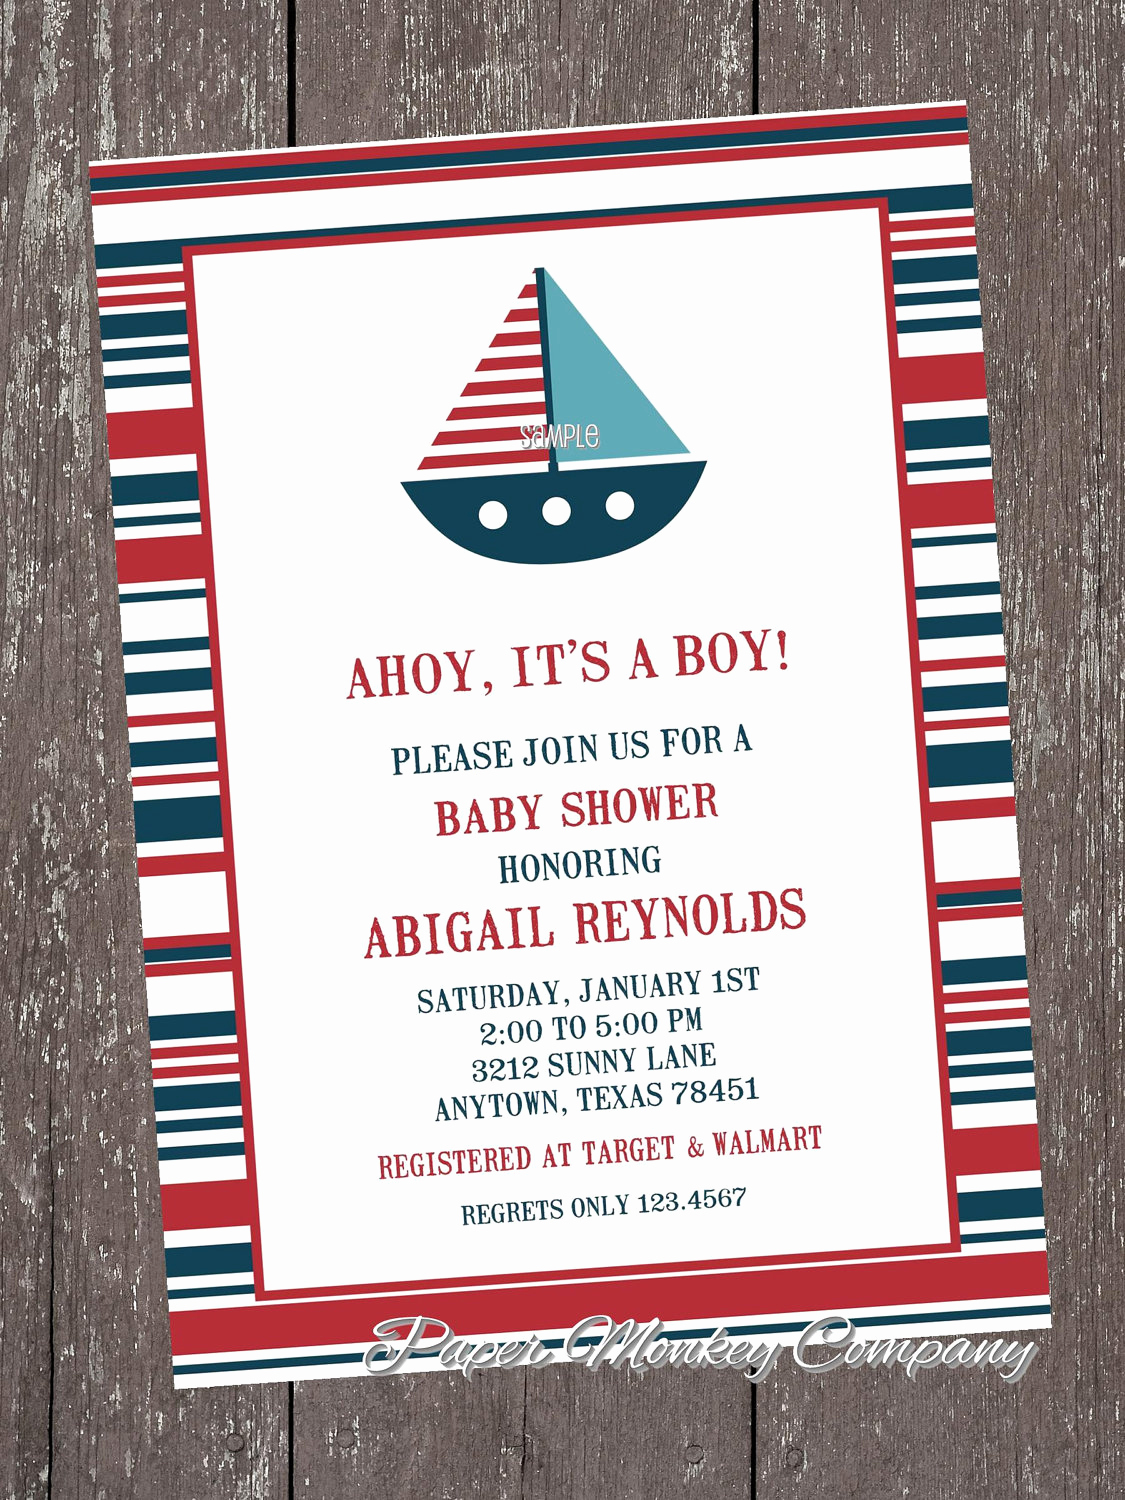 Nautical Baby Shower Invitation Template Elegant Nautical Sailboat Baby Shower Invitations